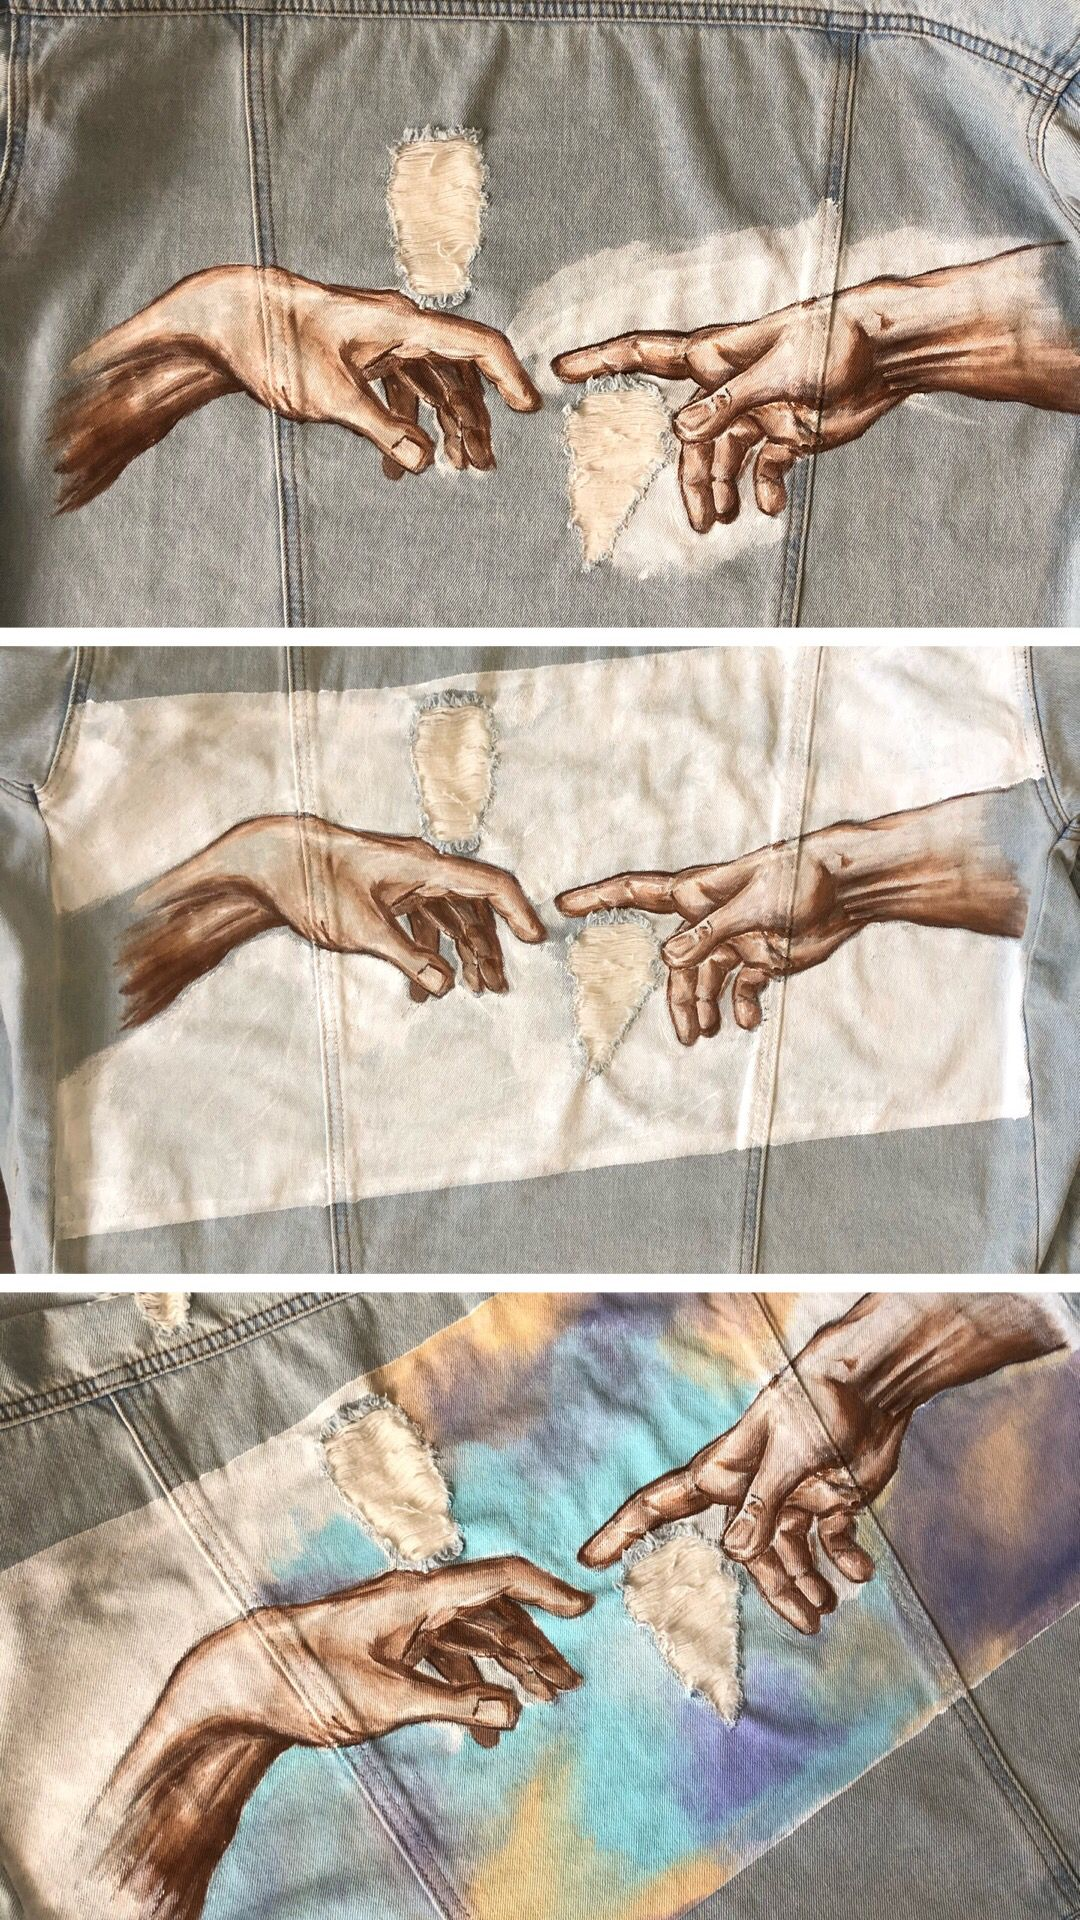 Hands Almost Touching Painting : hands, almost, touching, painting, Painted, Custom, Denim, Jacket, Michelangelo, Creation, Hands, Peonies, Jacket,